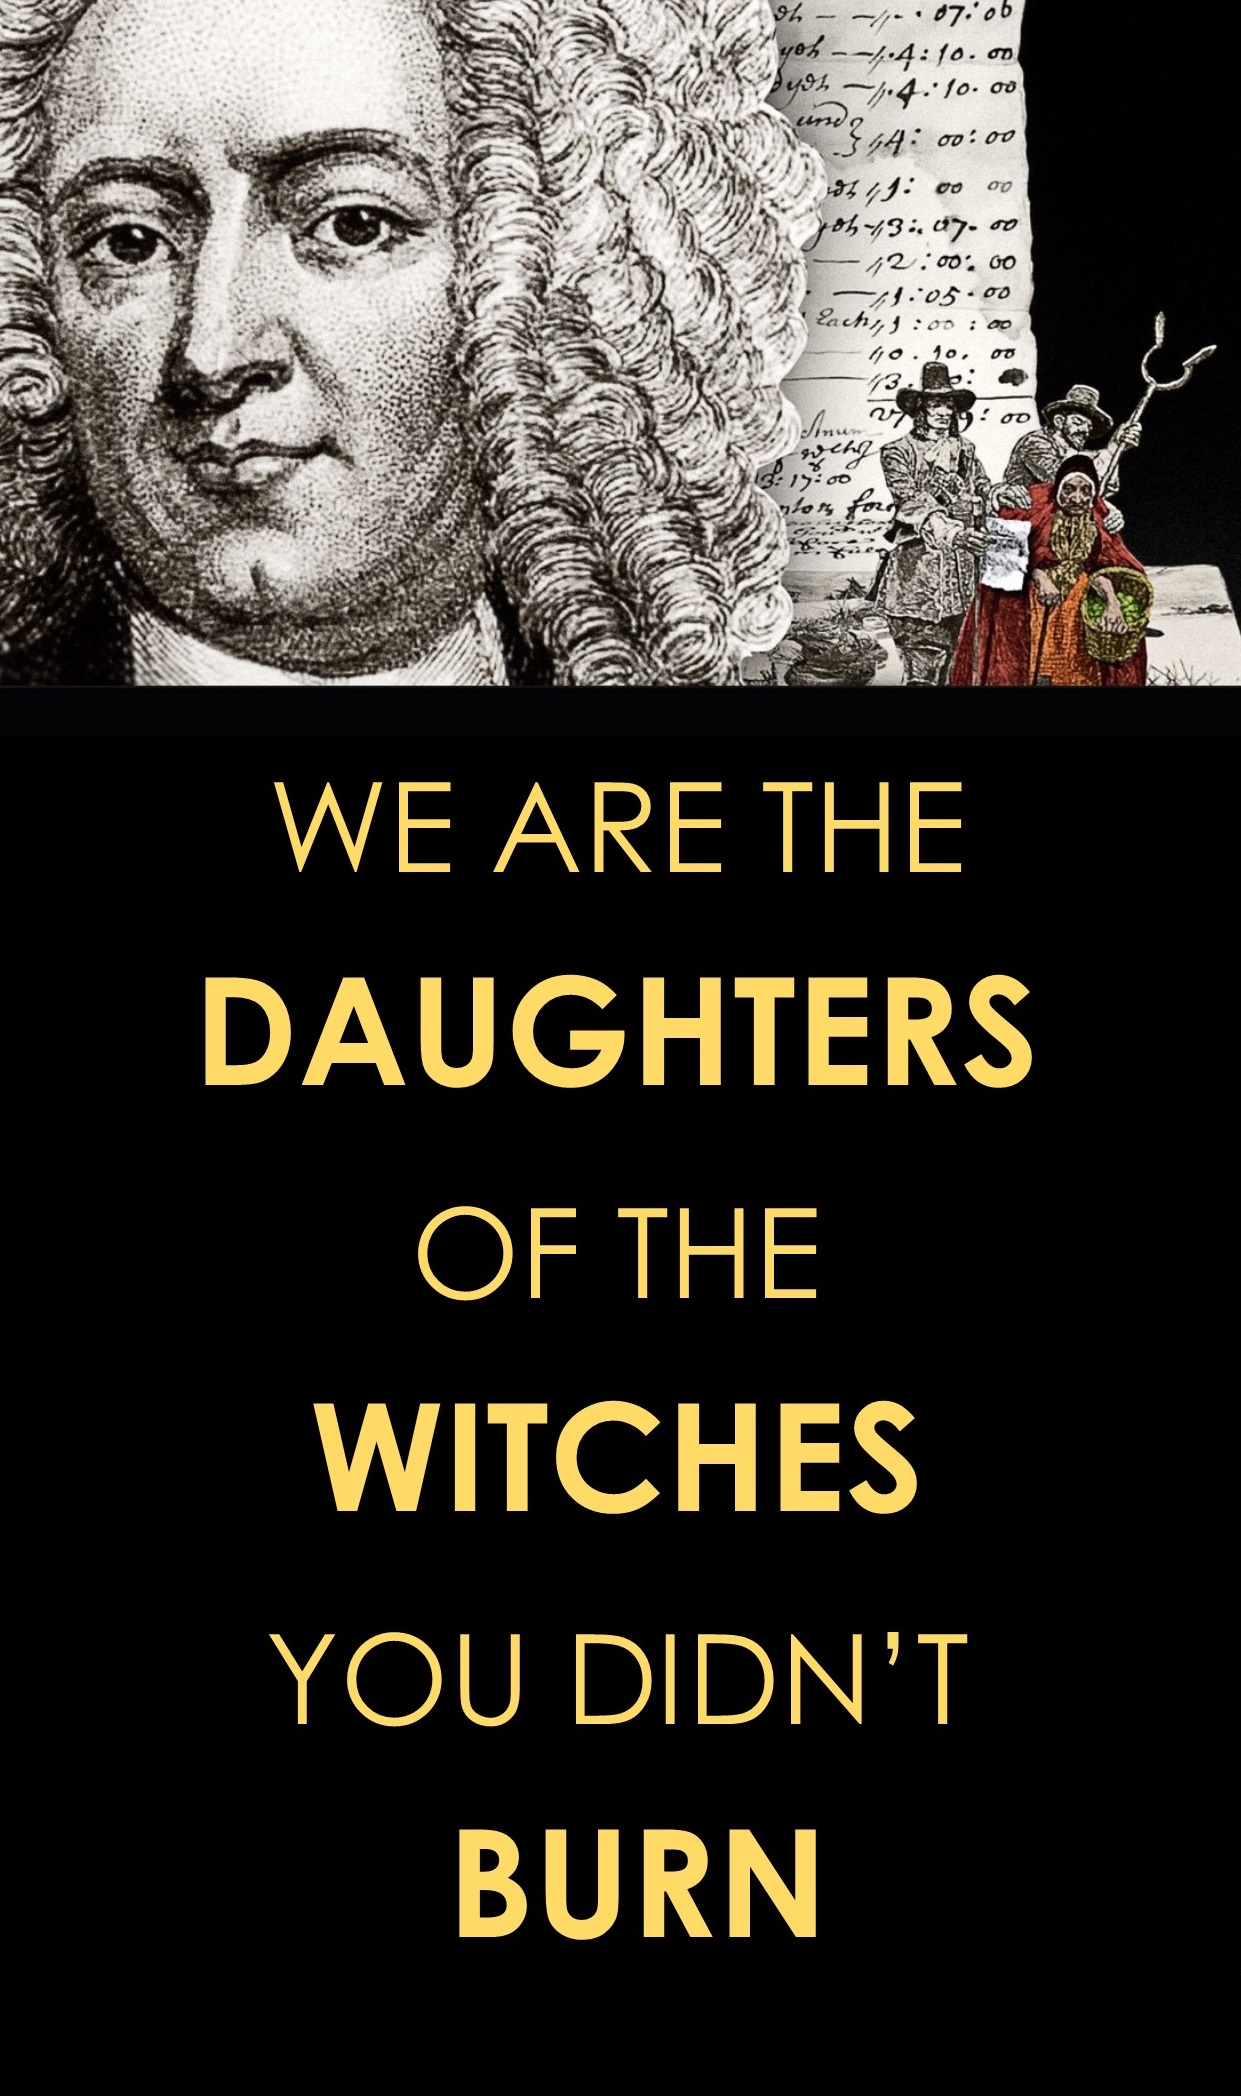 Related:  'The Witches of Salem'  by Stacy Schiff for The New Yorker